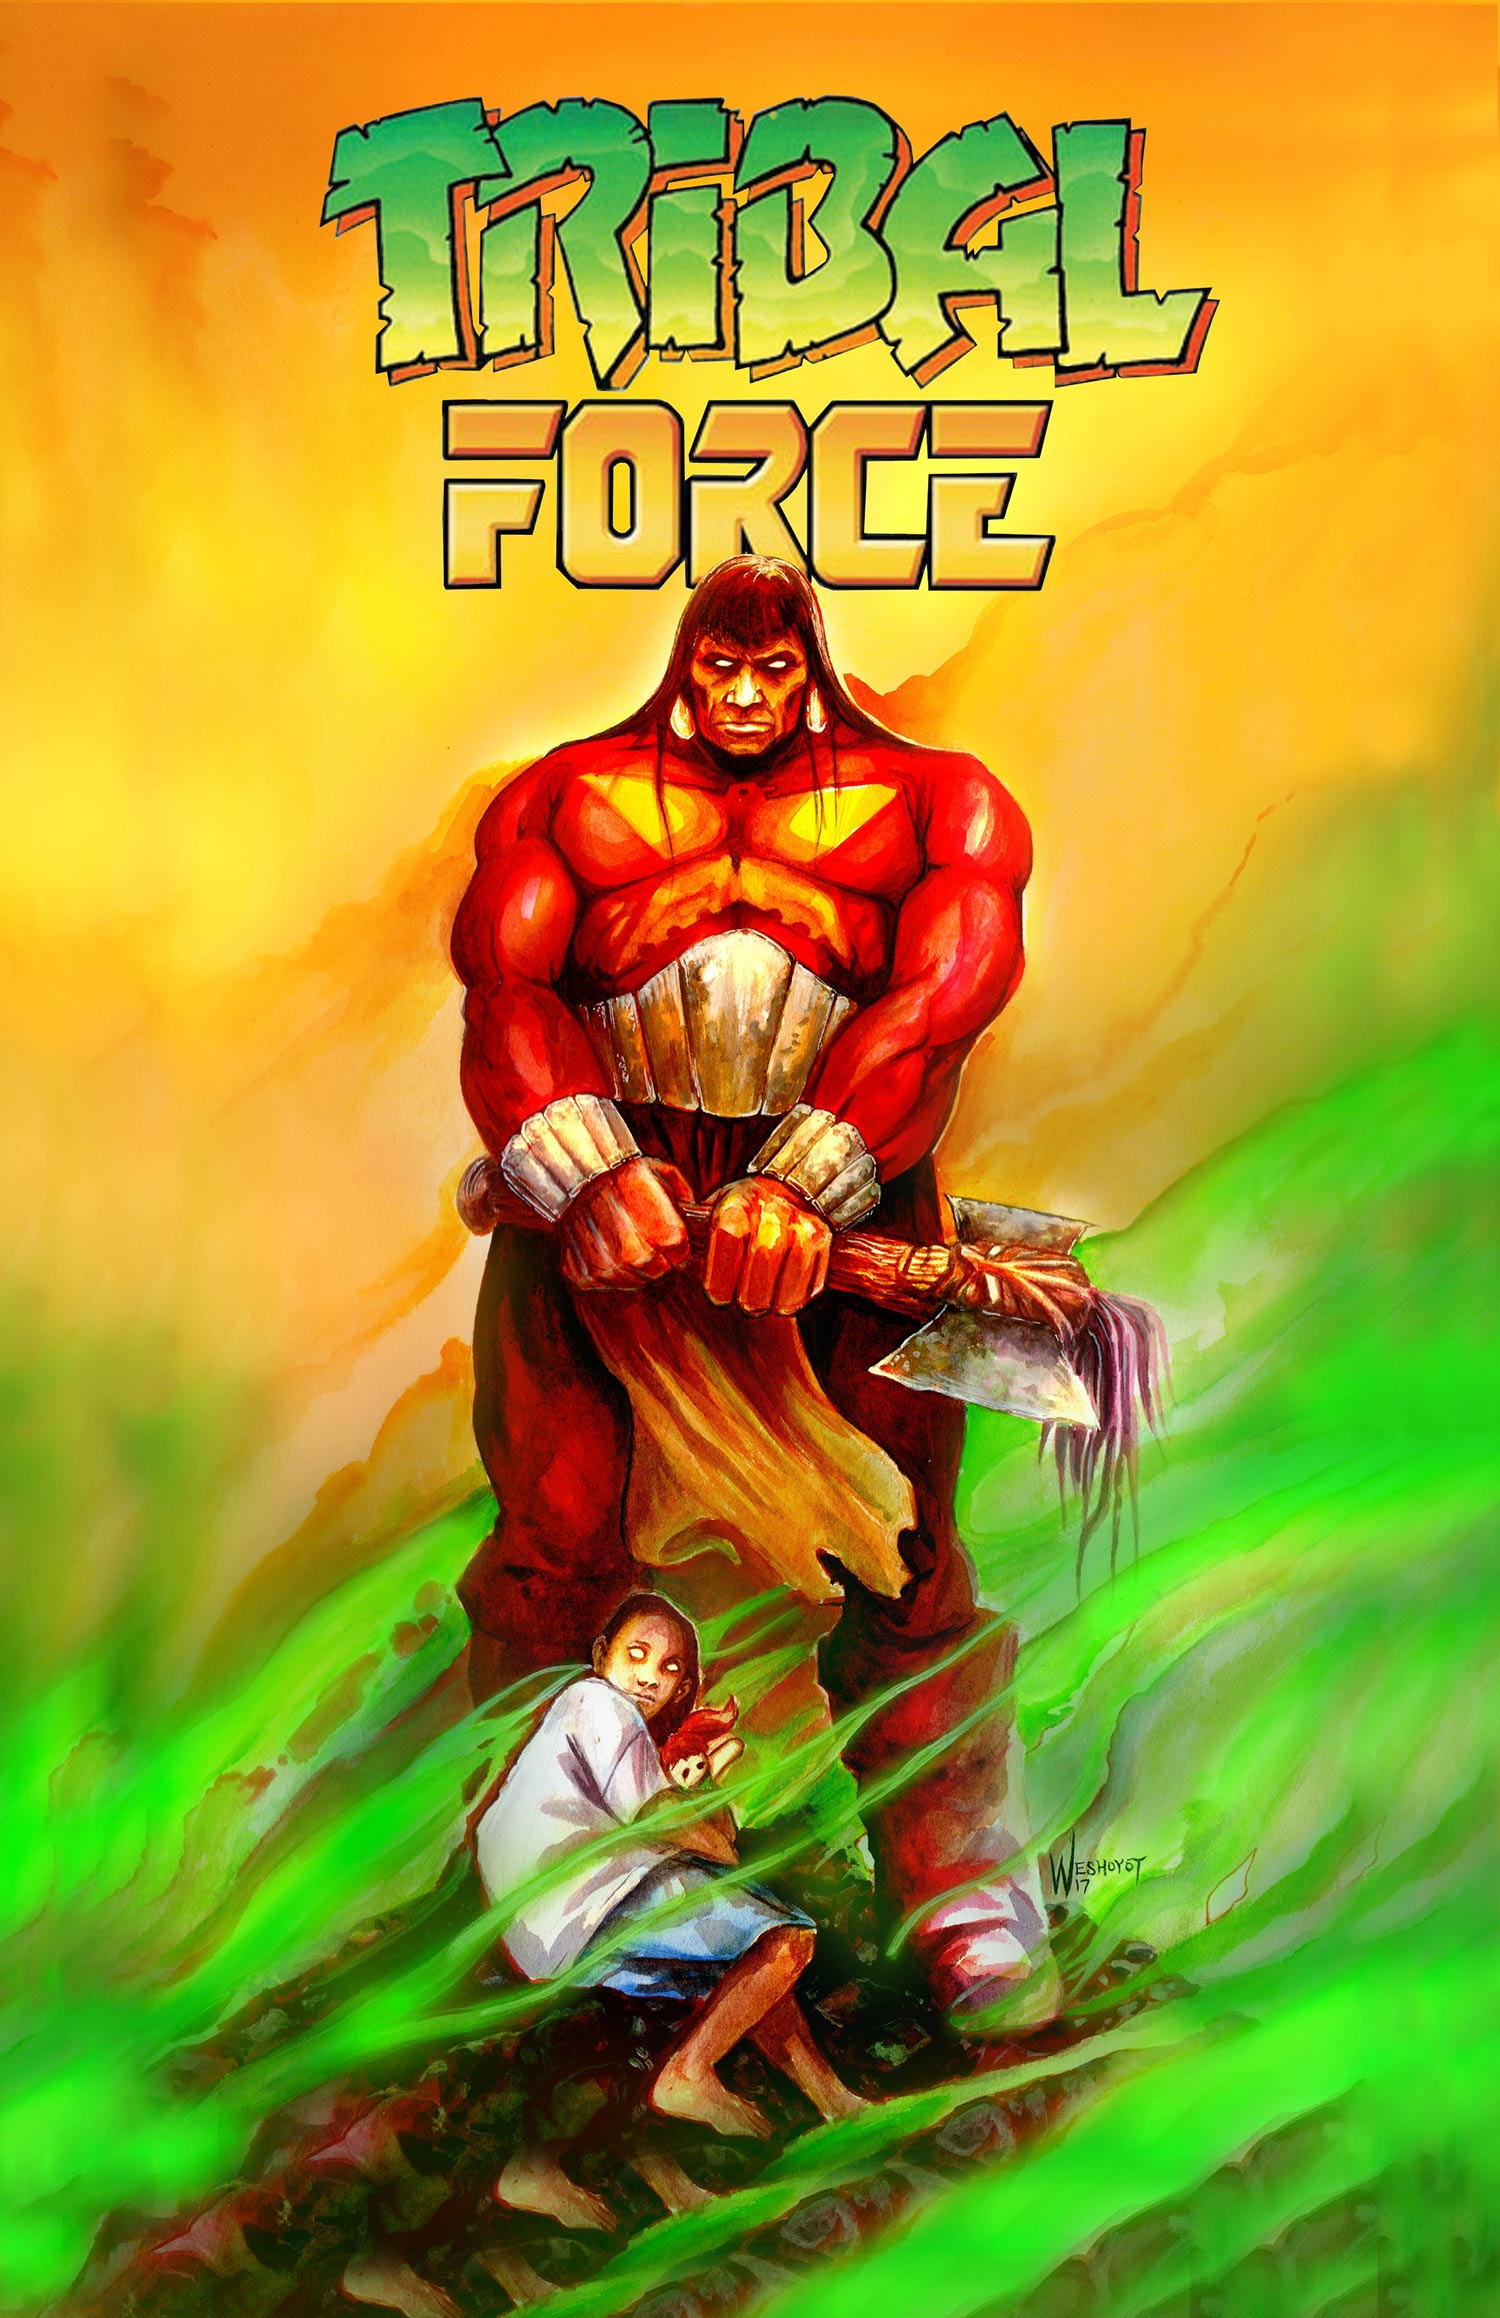 Tribal force cover